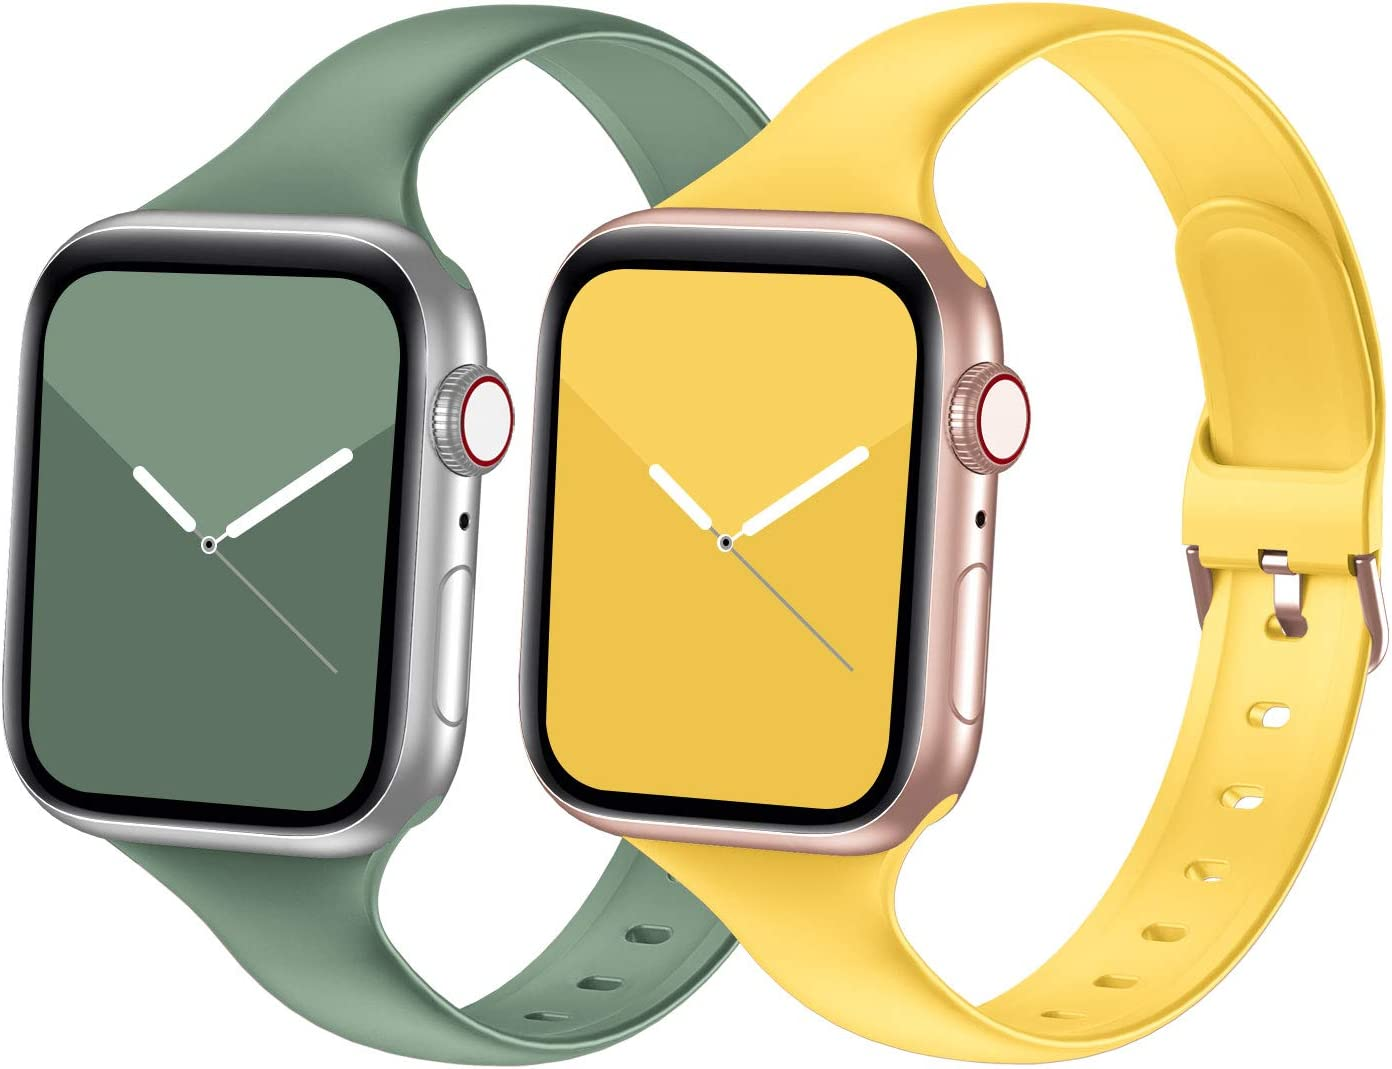 Seizehe Compatible with Apple Watch Band 38MM 40MM 42MM 44MM Series 3 Series 5, Silicone Slim Thin Narrow iWatch Bands 38MM 40MM 42MM 44MM Womens Compatible for Apple Watch SE Series 6 5 4 3 2 1